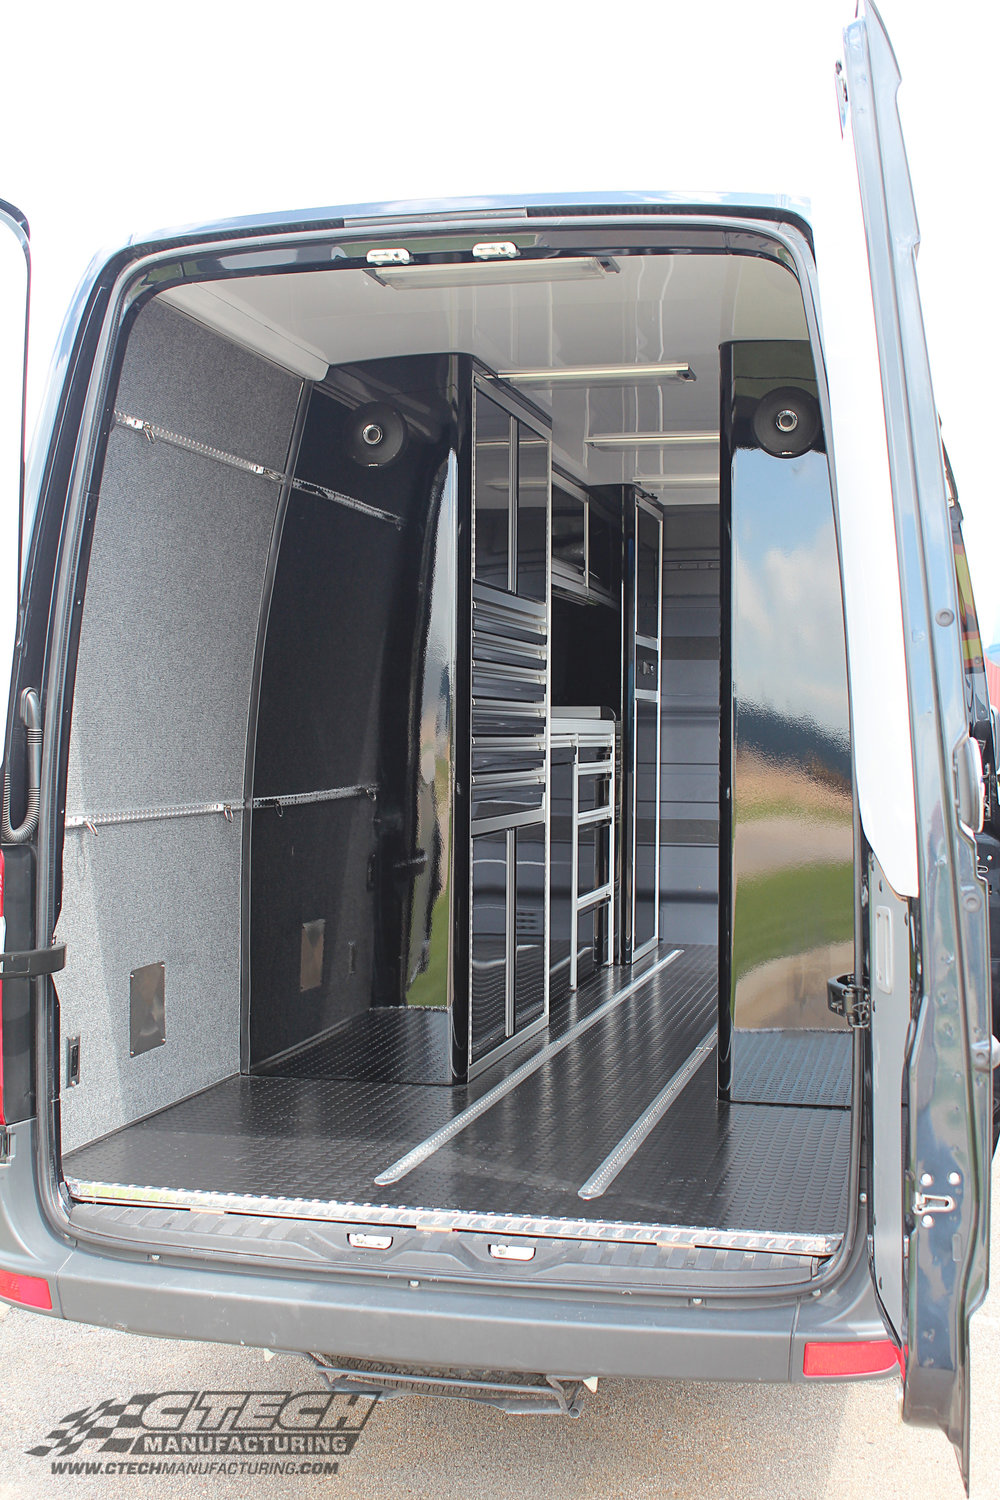 CTECH van cabinets represent a revolutionary new approach to mobile storage. The same cabinets that we use to build premium showrooms and garage spaces can be fitted to service trucks, vans, and trailers. BOM 14198 Customer: J3 Competition  / PSL Van